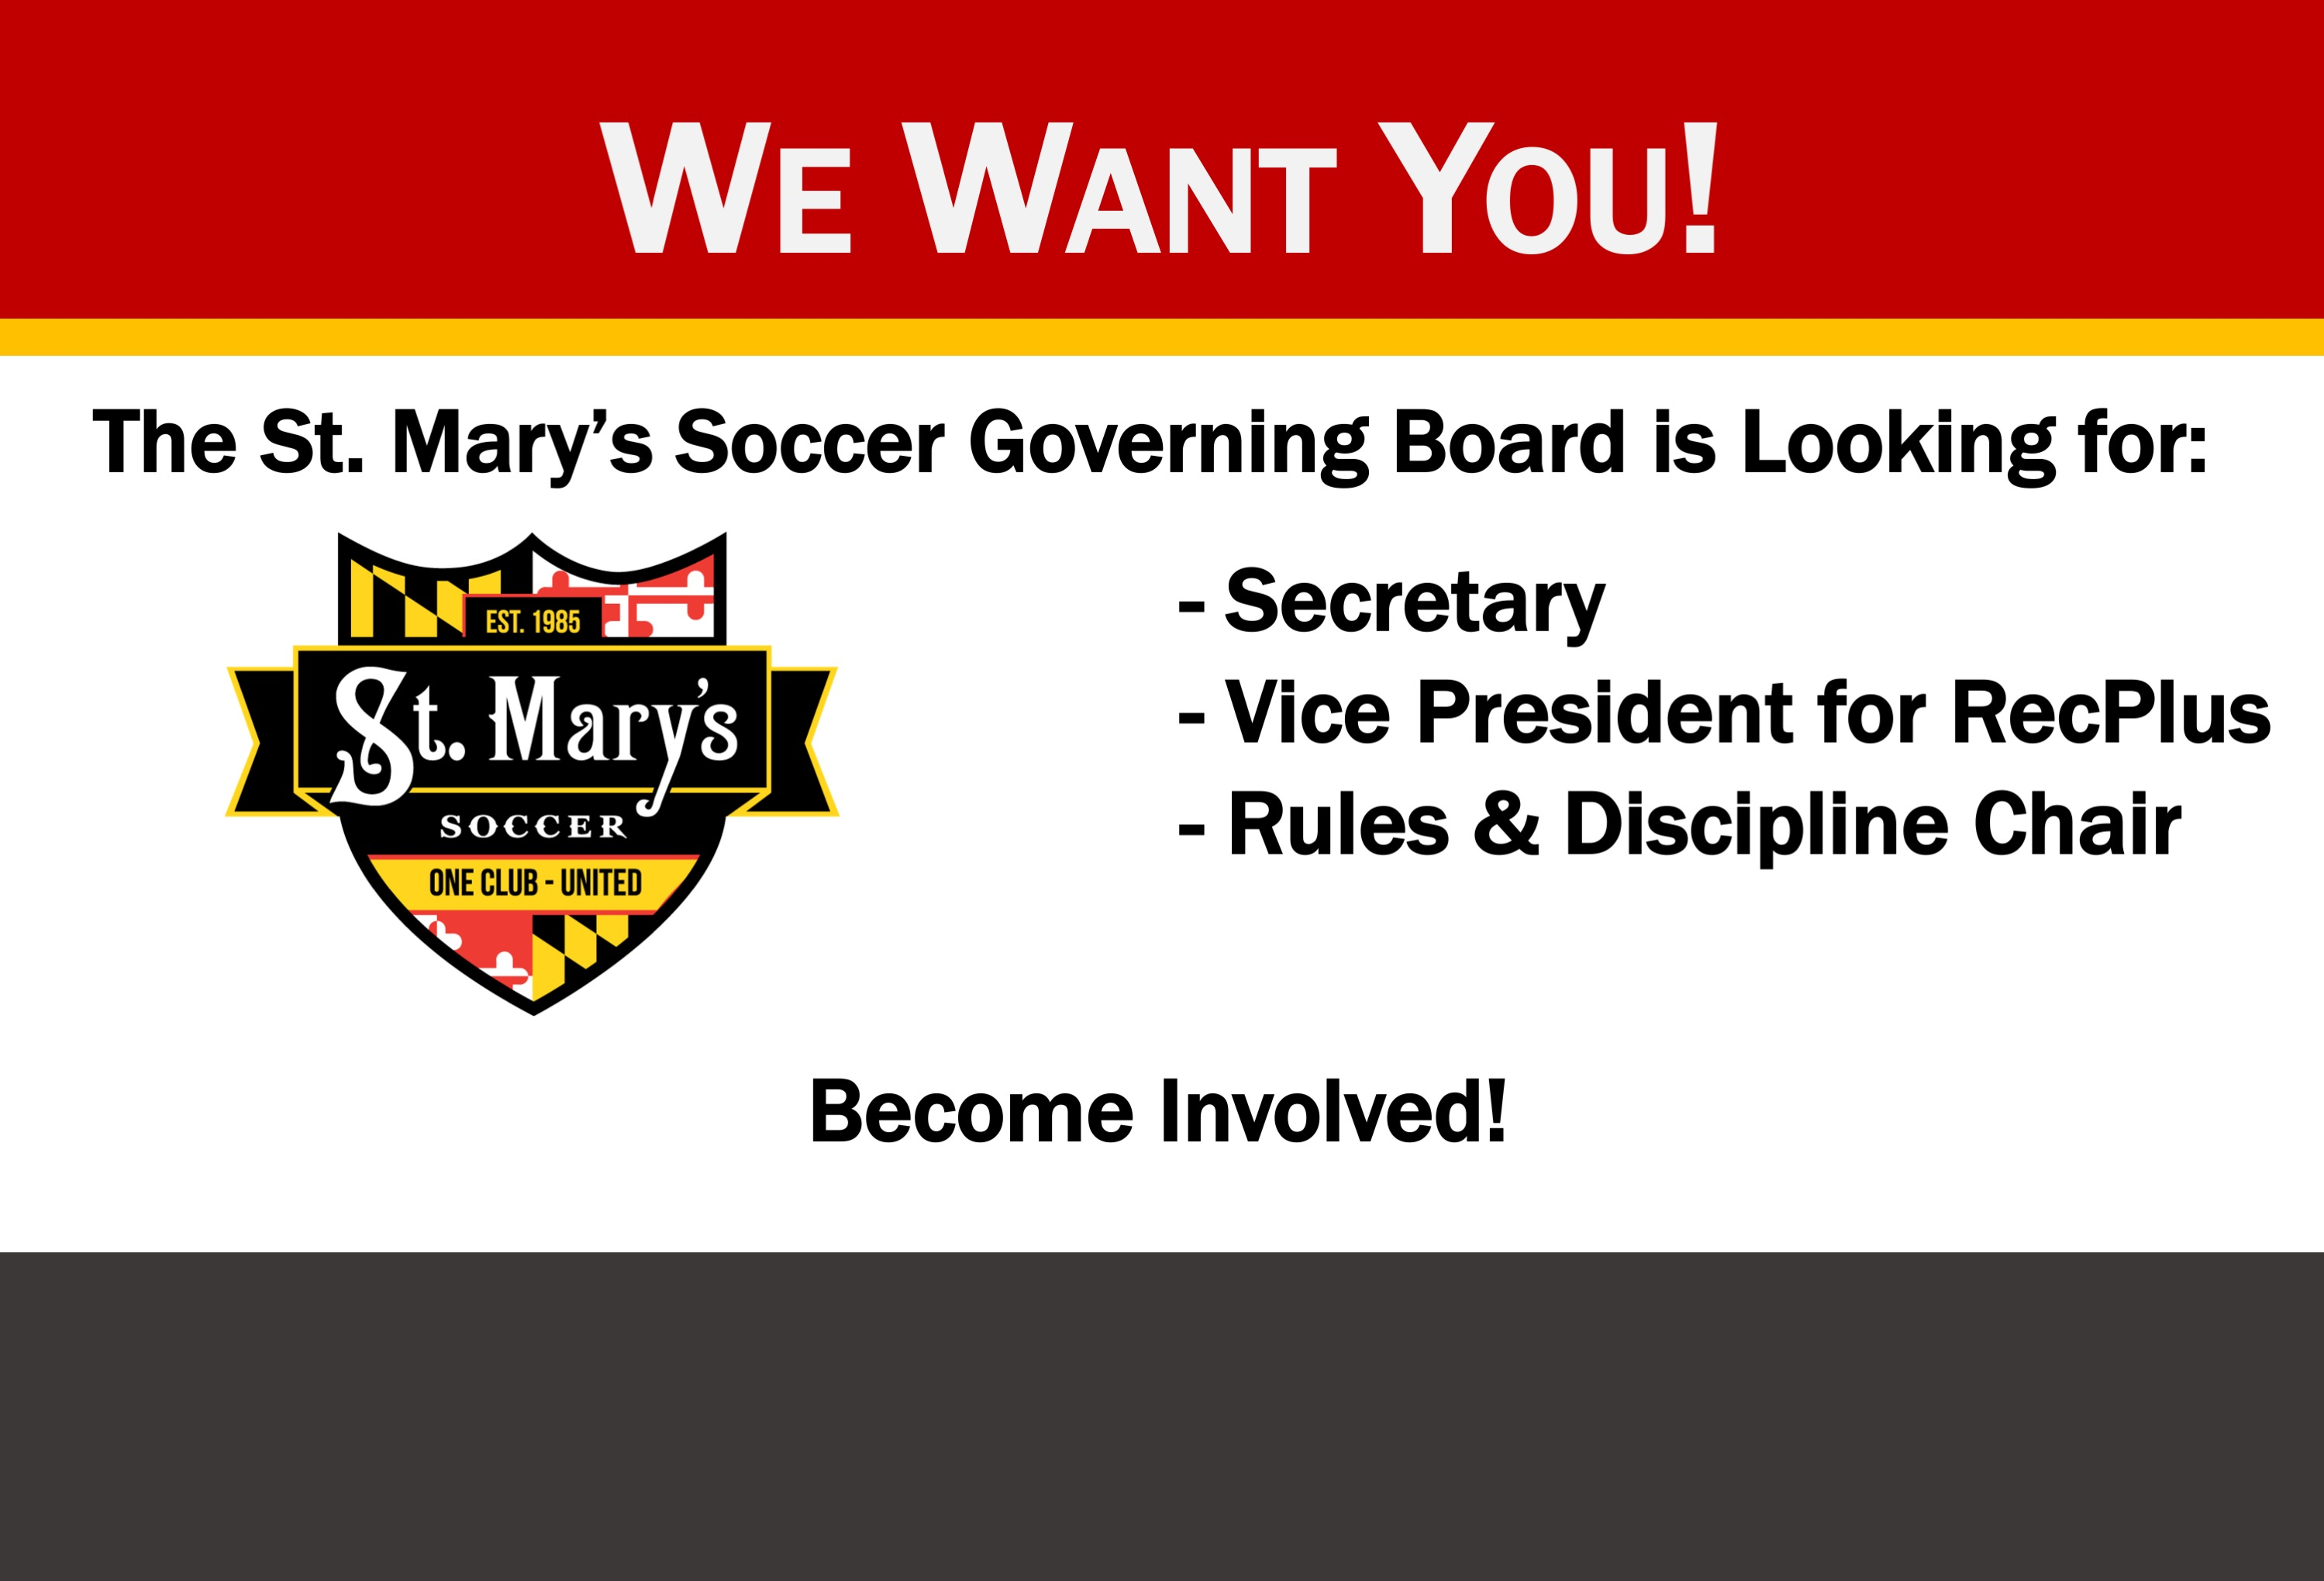 Come Volunteer with St. Mary's Soccer!